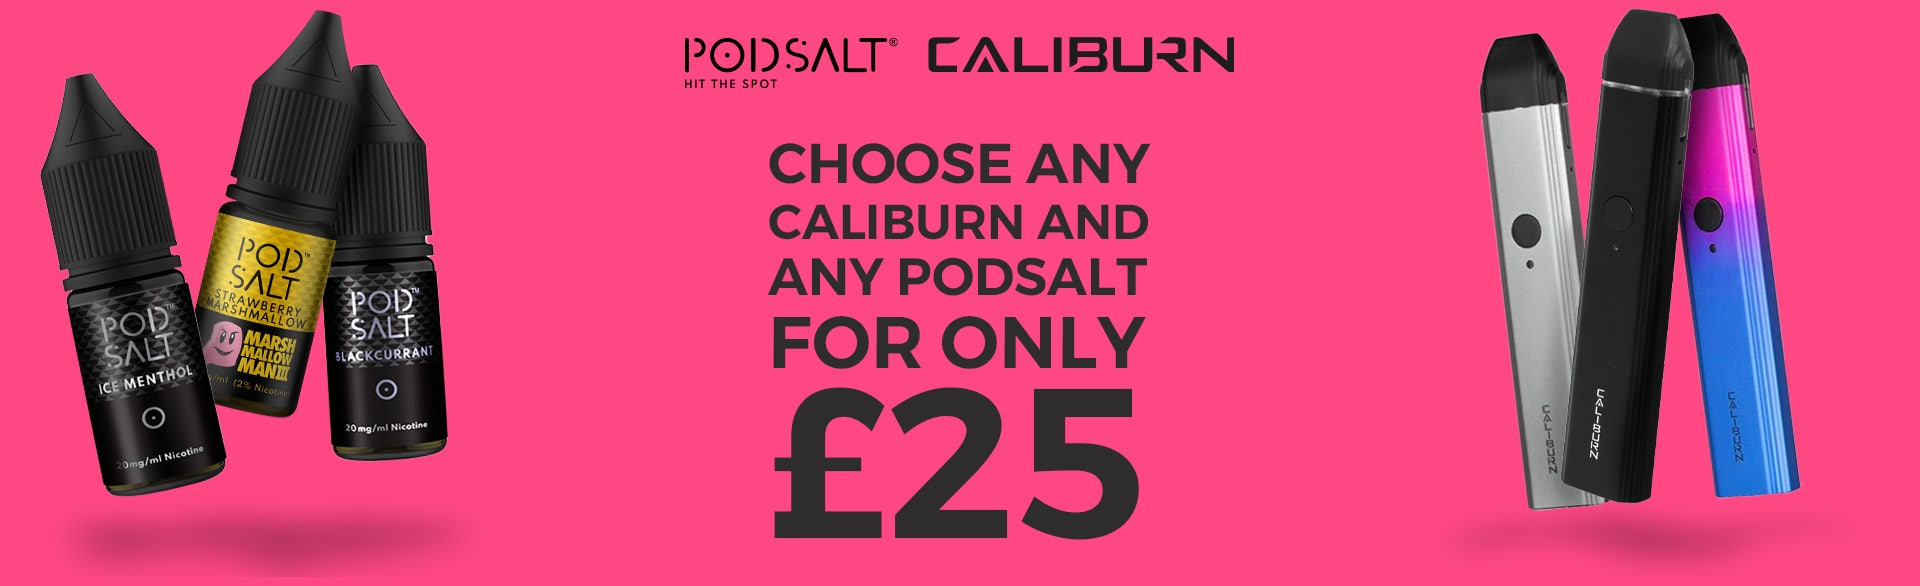 CaliBurn with any Pod Salt £25